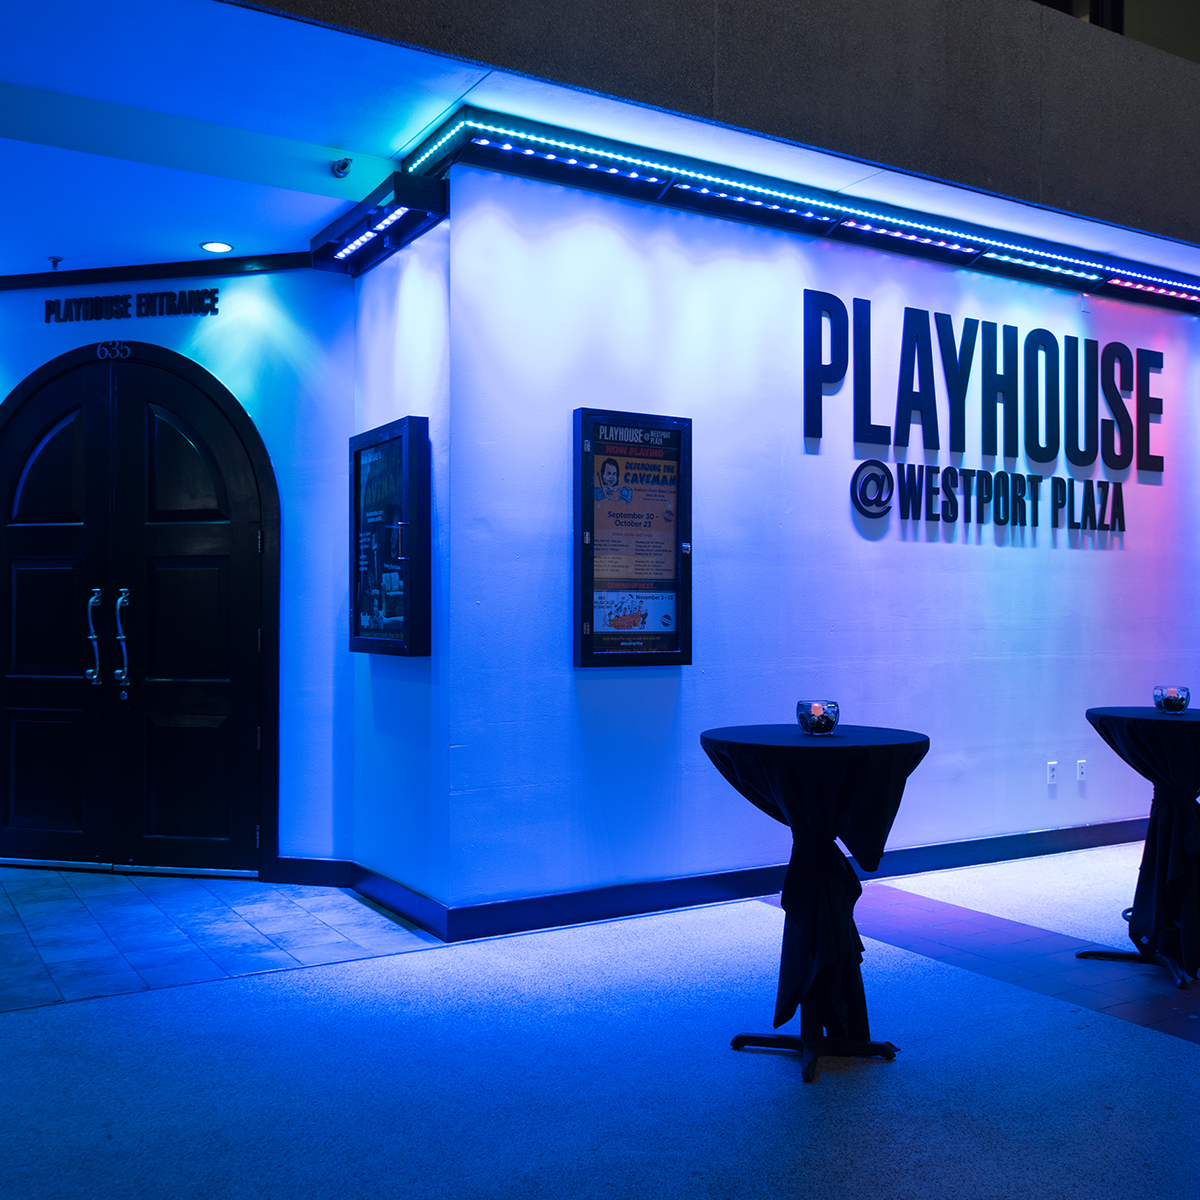 Playhouse @ Westport Plaza